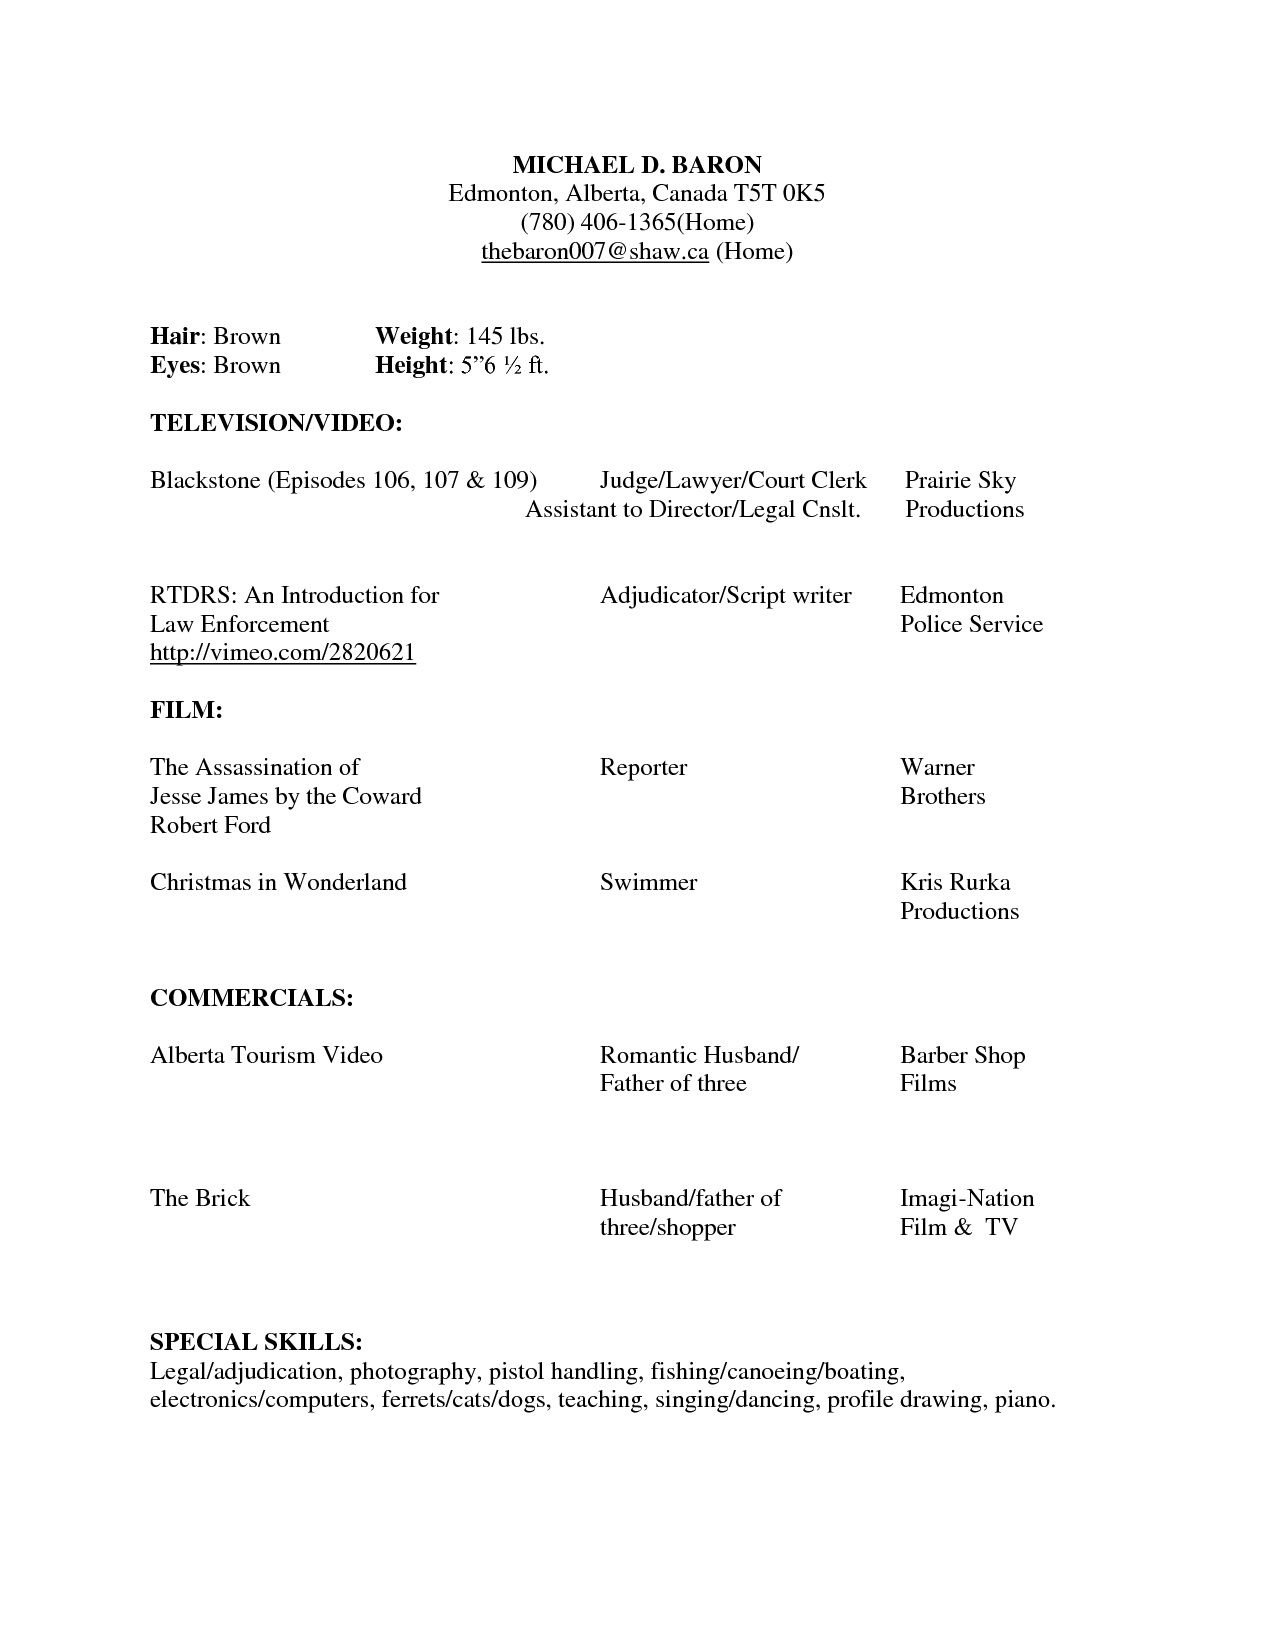 beginner acting resume sample beginner acting resume sample are examples we provide as reference to